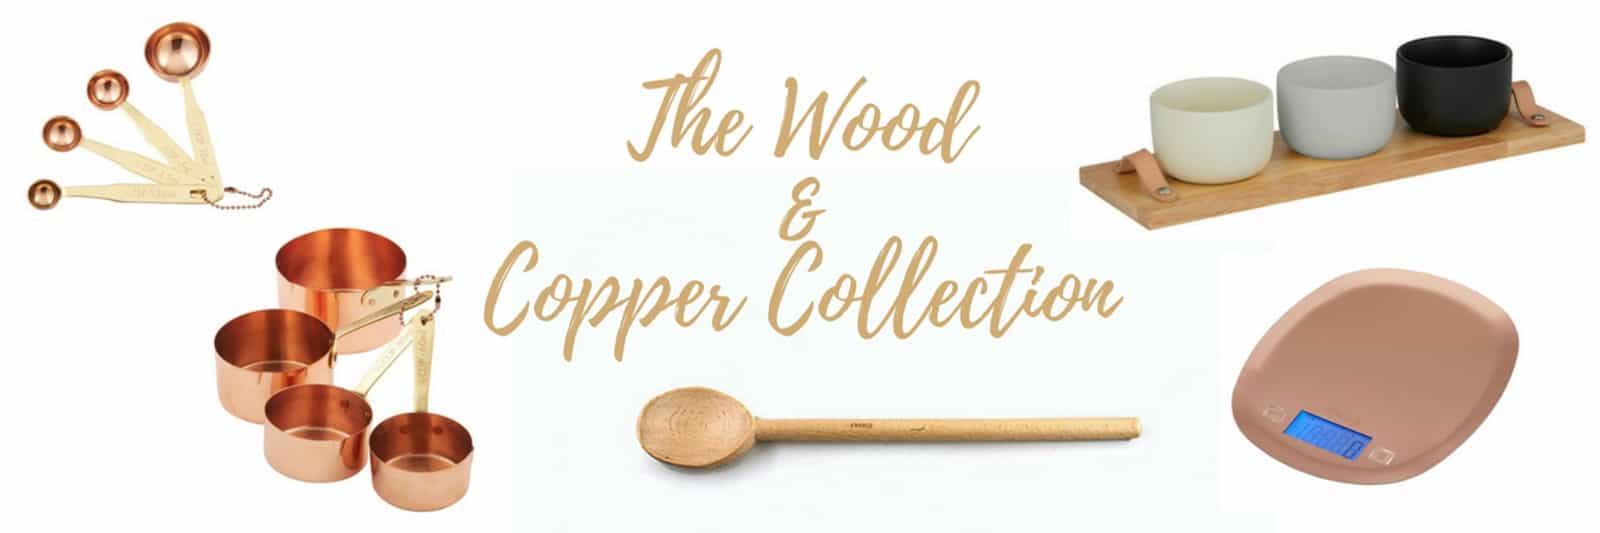 Stay on-trend with our stunning collection of wood & copper baking products and accessories, including measuring spoons & cups, scales and serving trays.